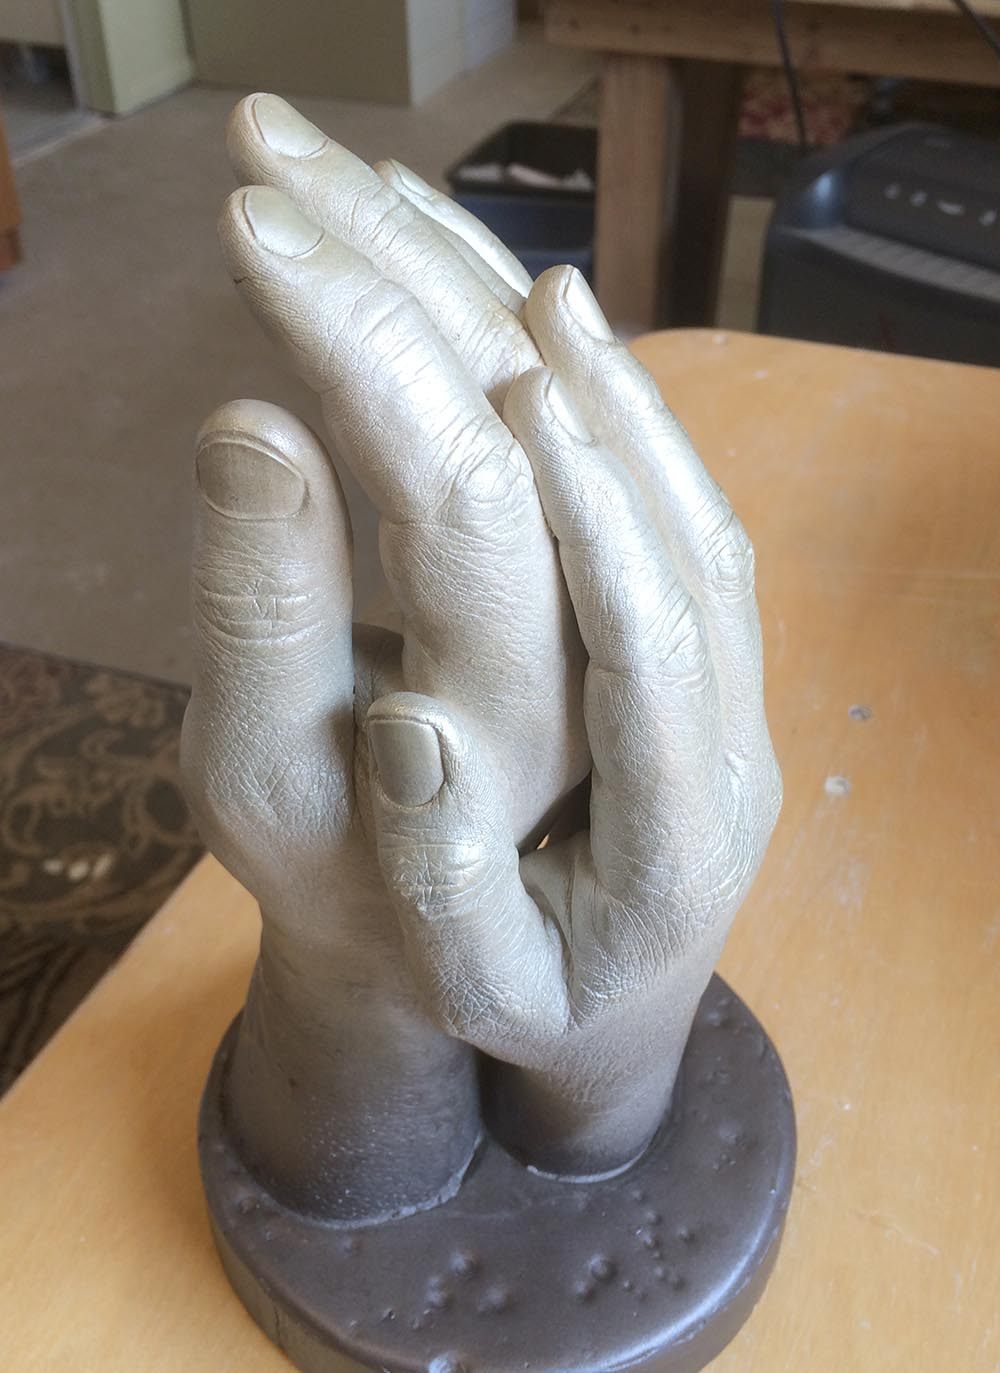 Couples hand castings make wonderful wedding gifts. This is a beautiful pose.